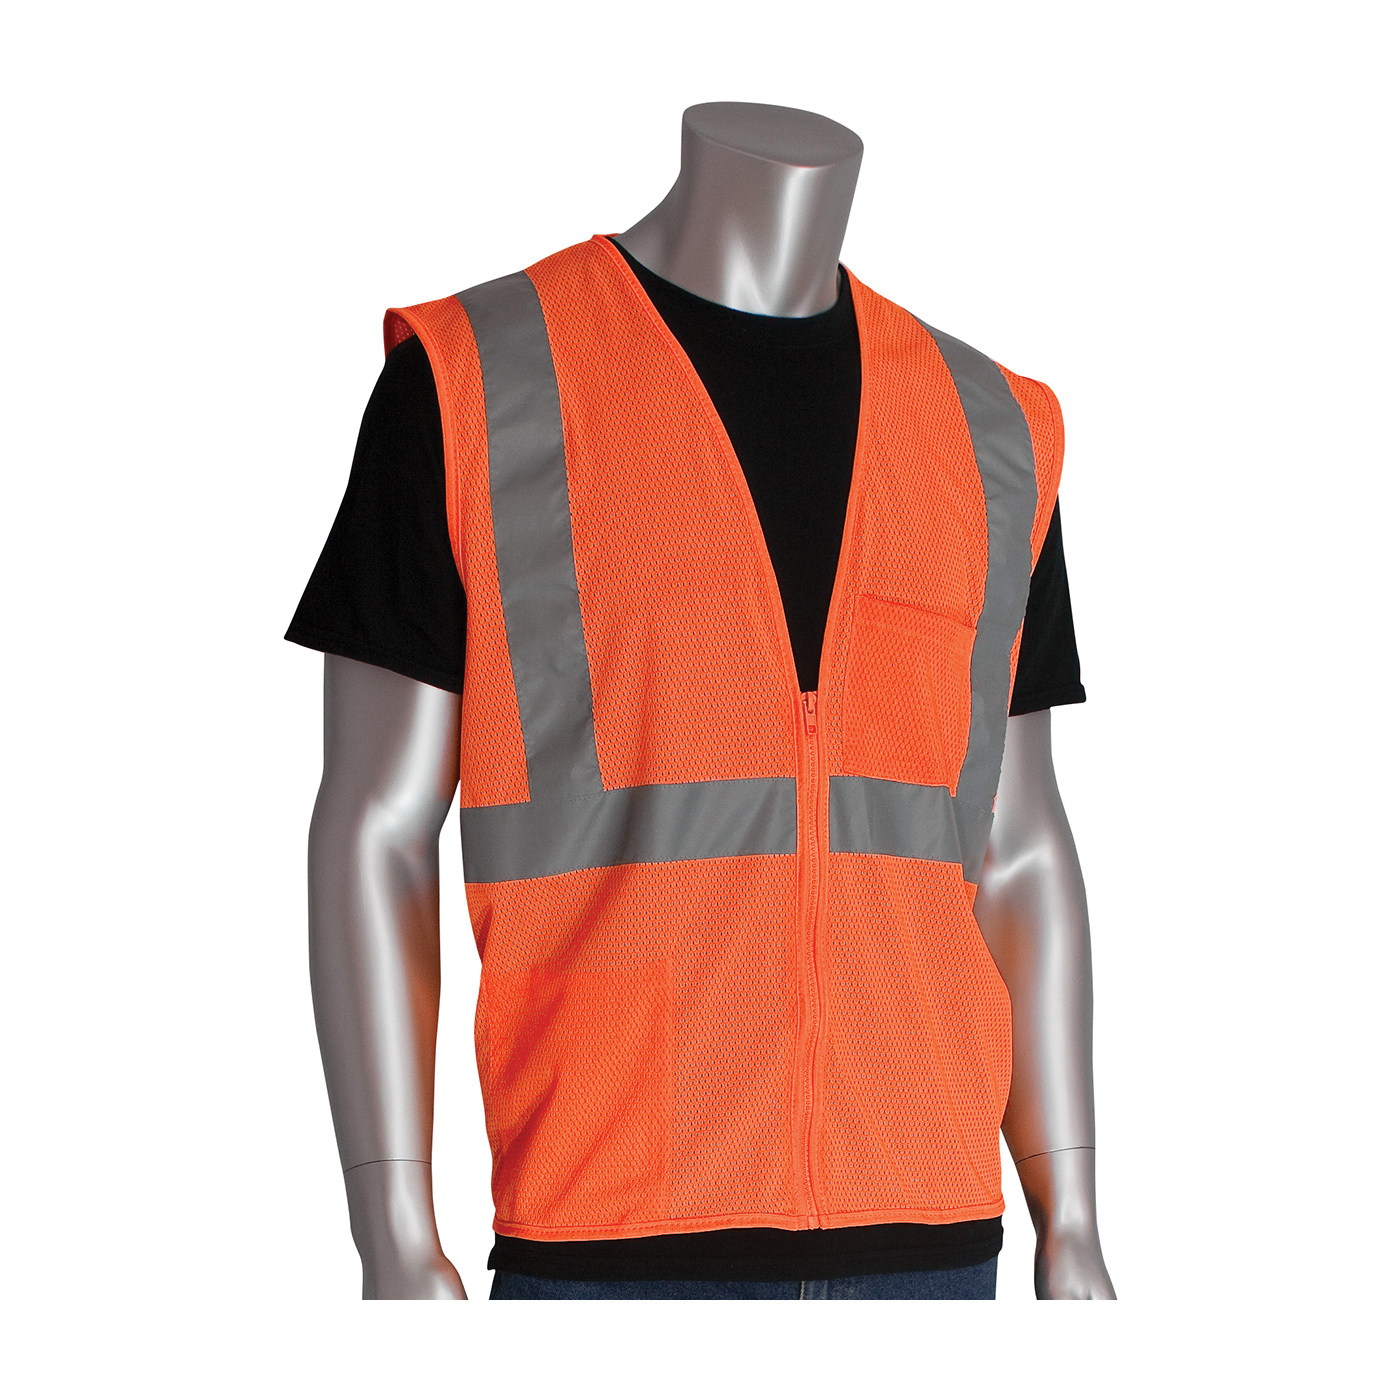 PIP® 302-0702Z-OR Safety Vest, Hi-Viz Orange, Polyester Mesh, Zipper Closure, 2 Pockets, ANSI Class: Class 2, Specifications Met: ANSI 107 Type R